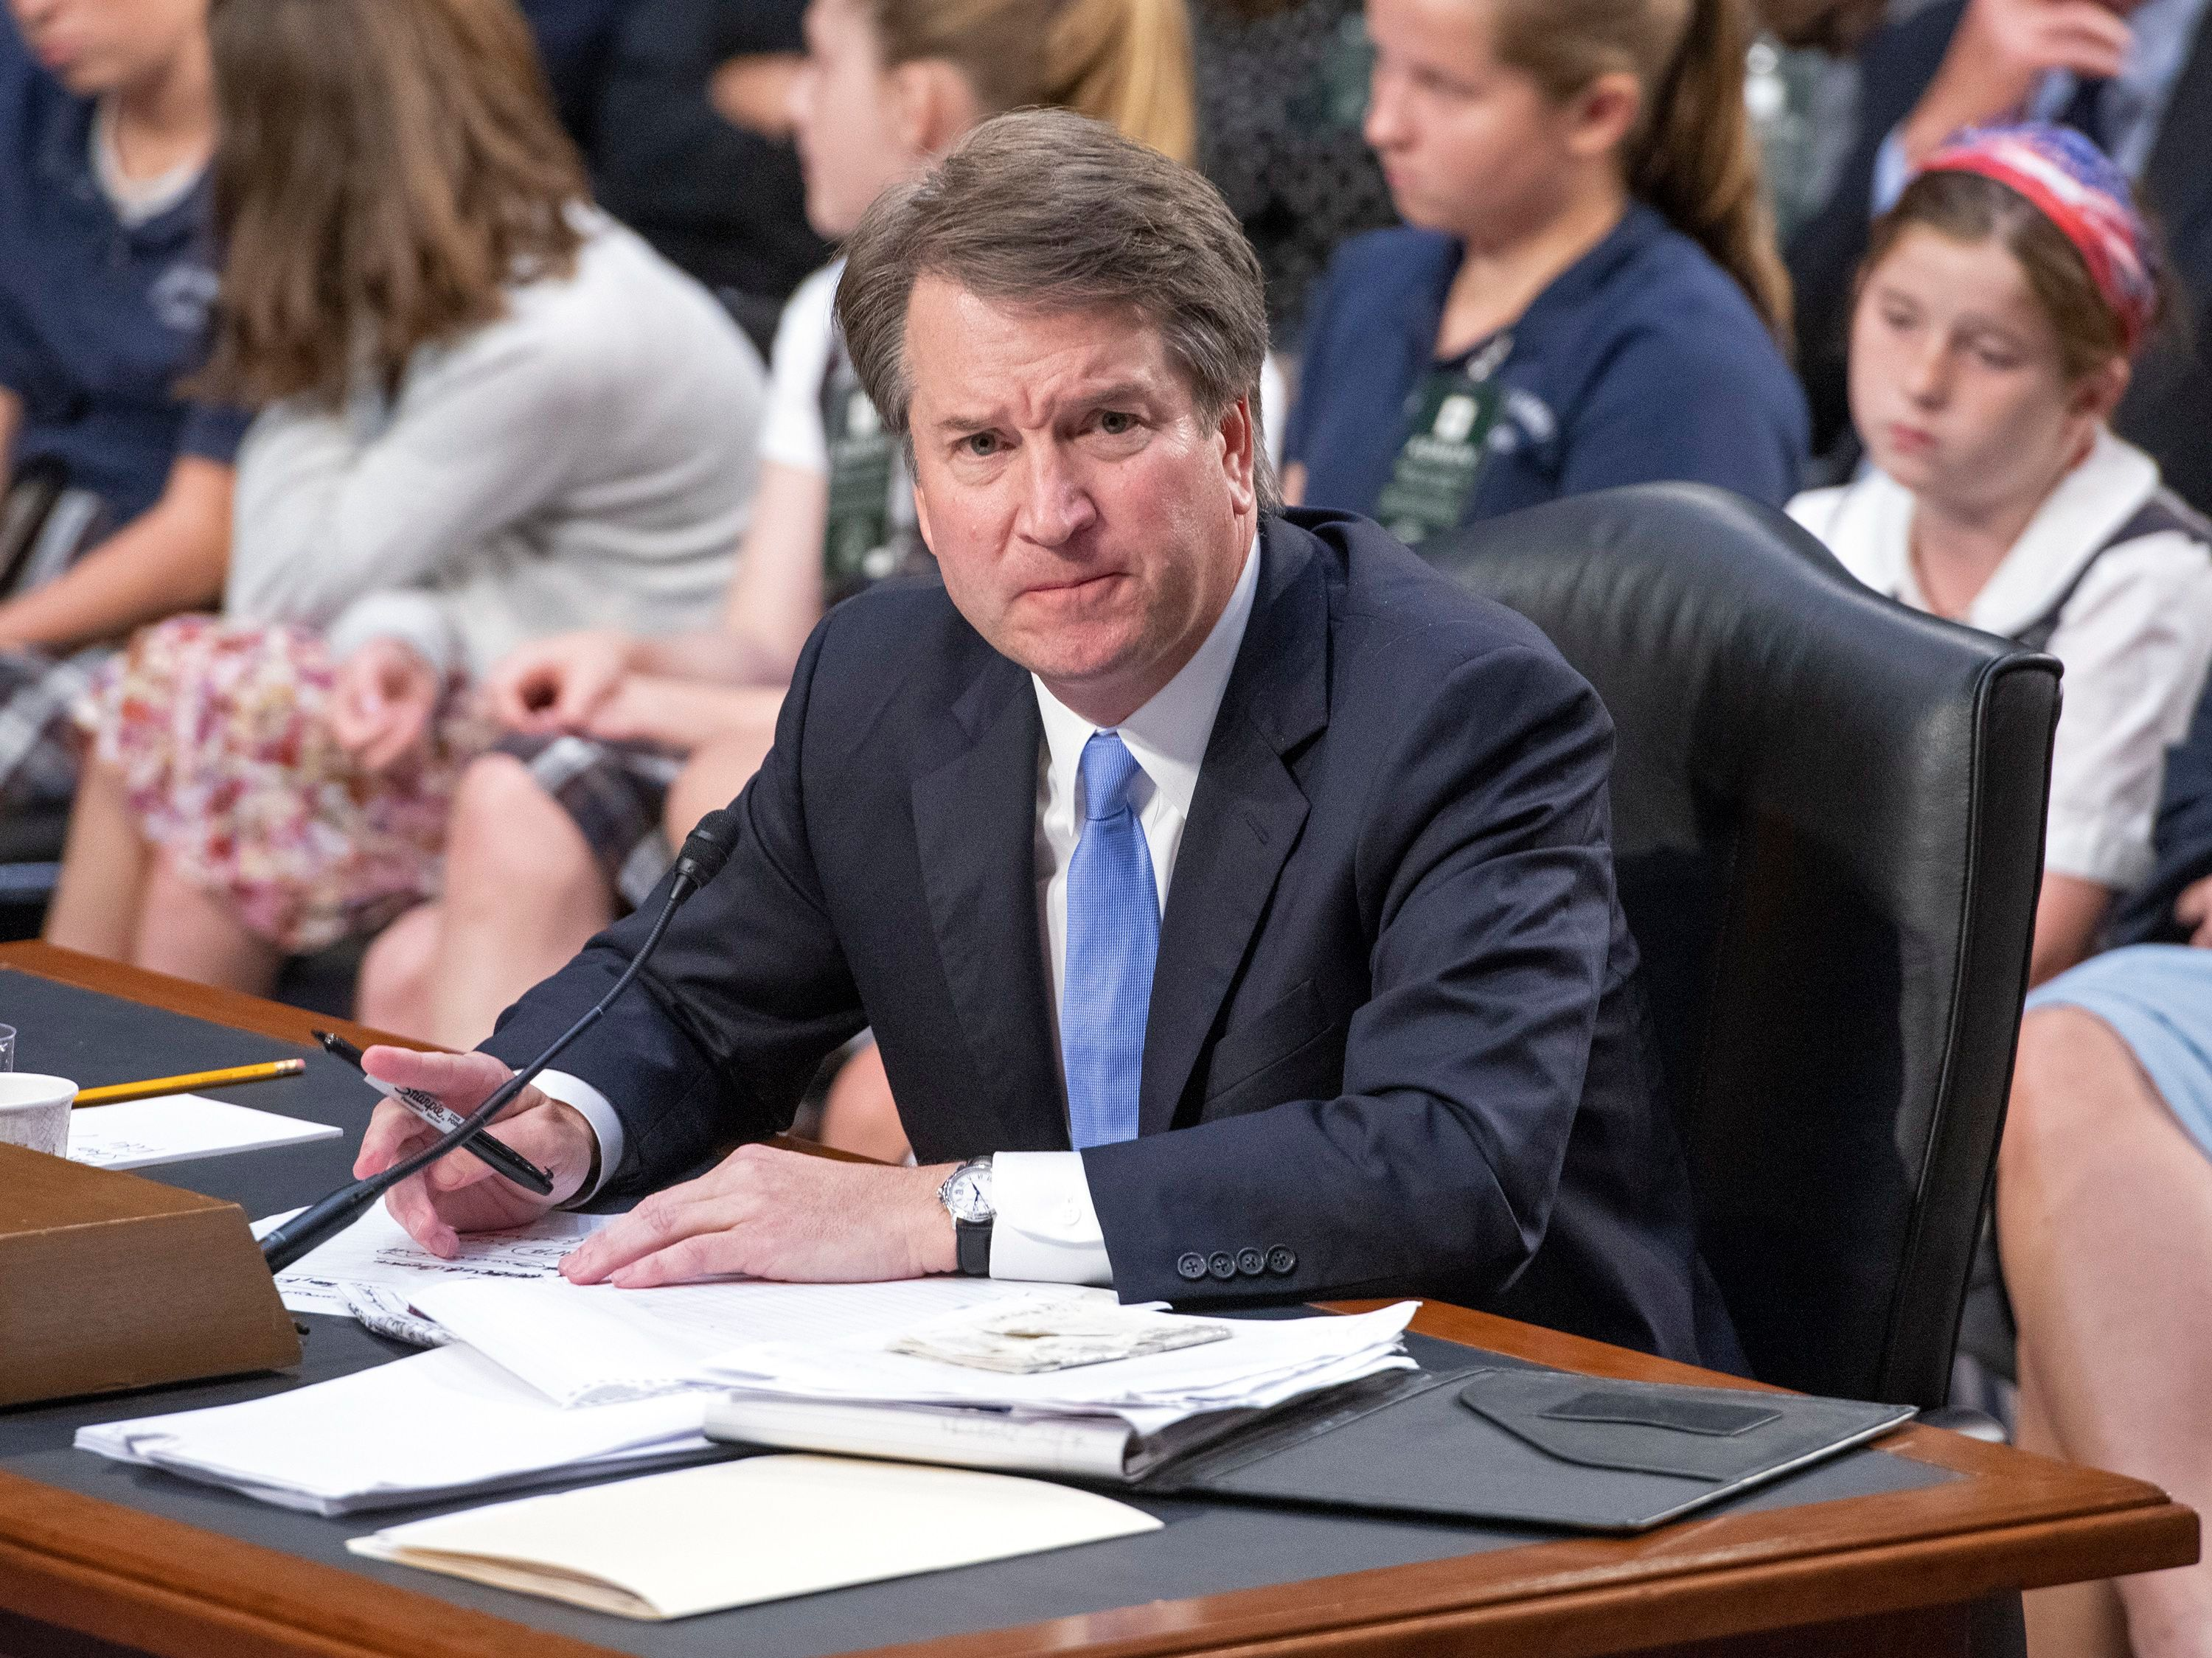 Judge Brett Kavanaugh testifies before the United States Senate Judiciary Committee on his nomination as Associate Justice of the US Supreme Court on Sept. 6, 2018.